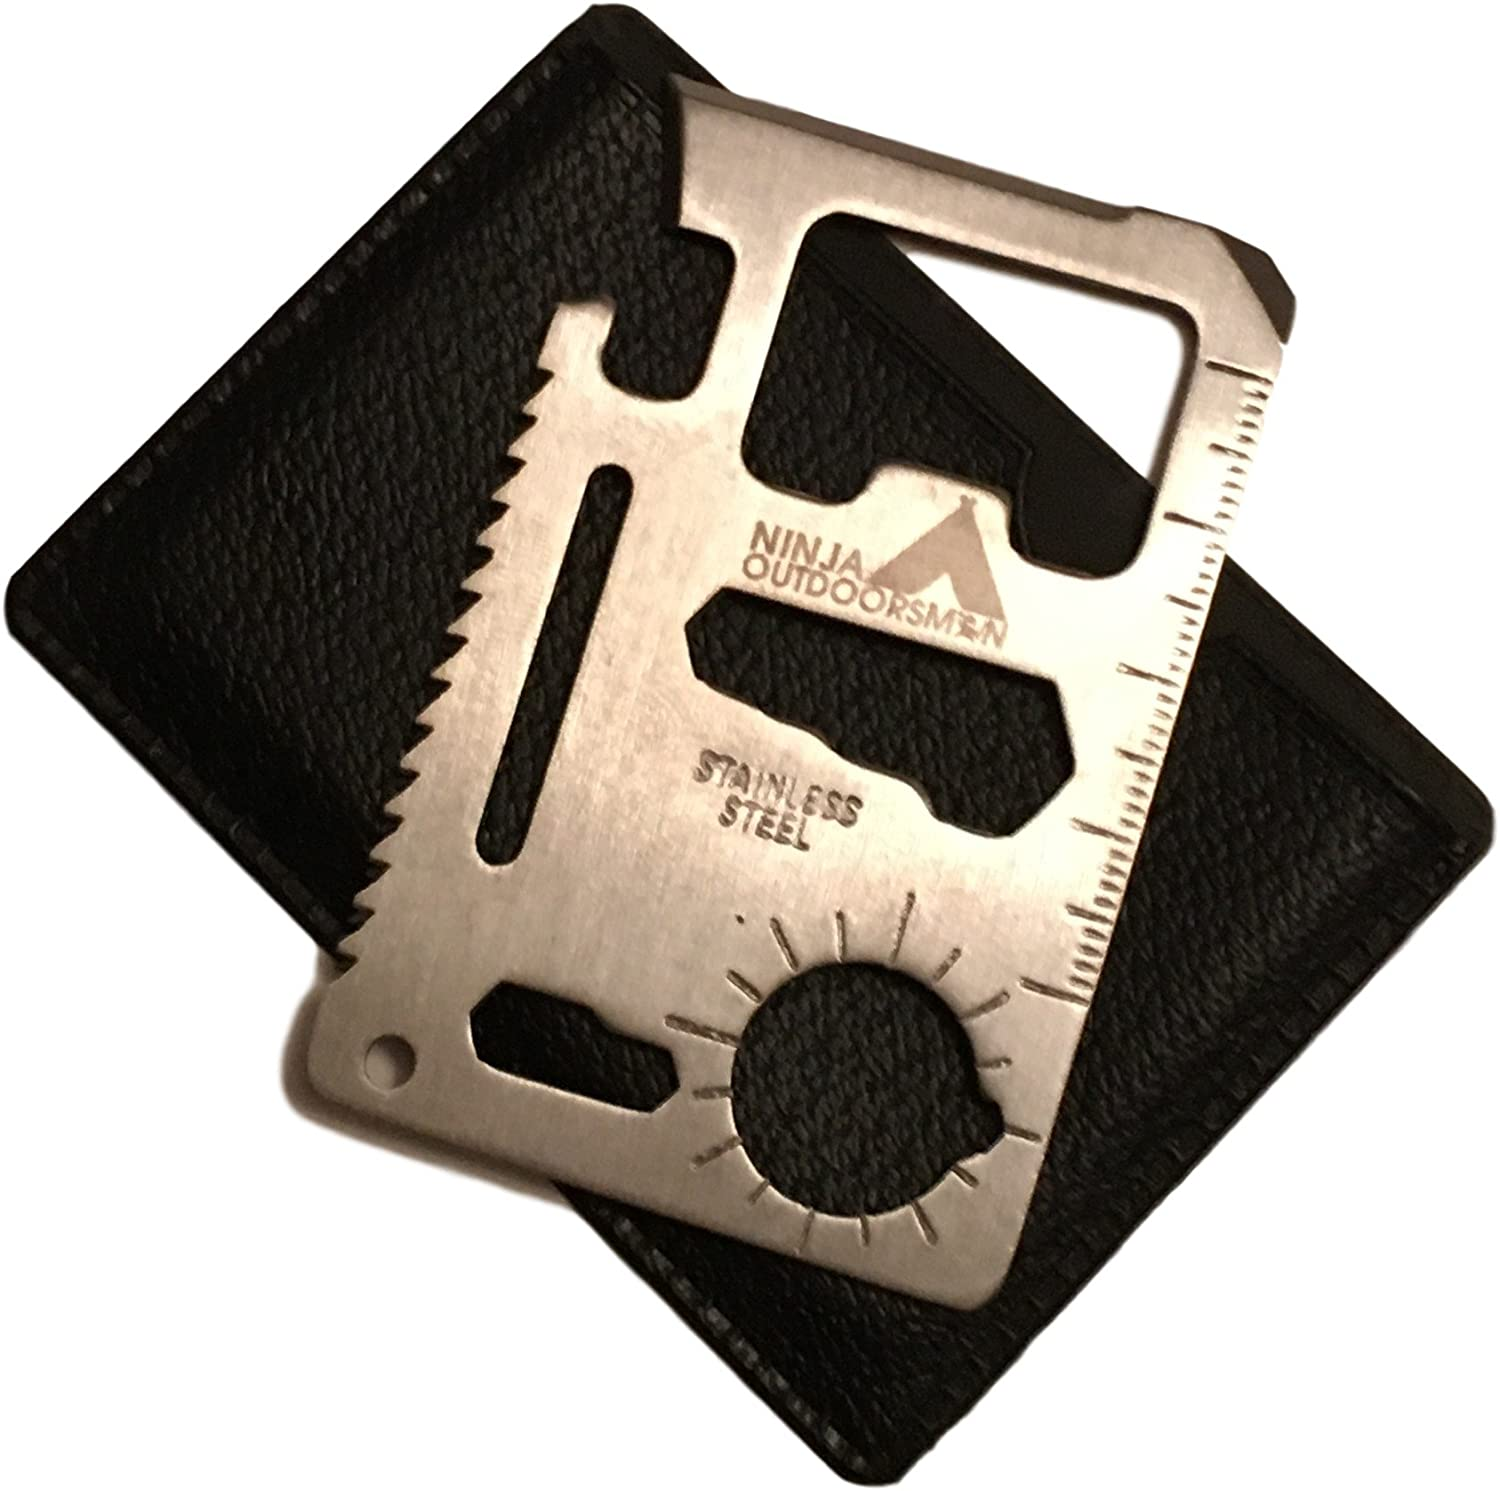 Ninja Outdoorsman 11 in 1 Stainless Steel Credit Card Pocket Sized Survival Multi tool (Single)